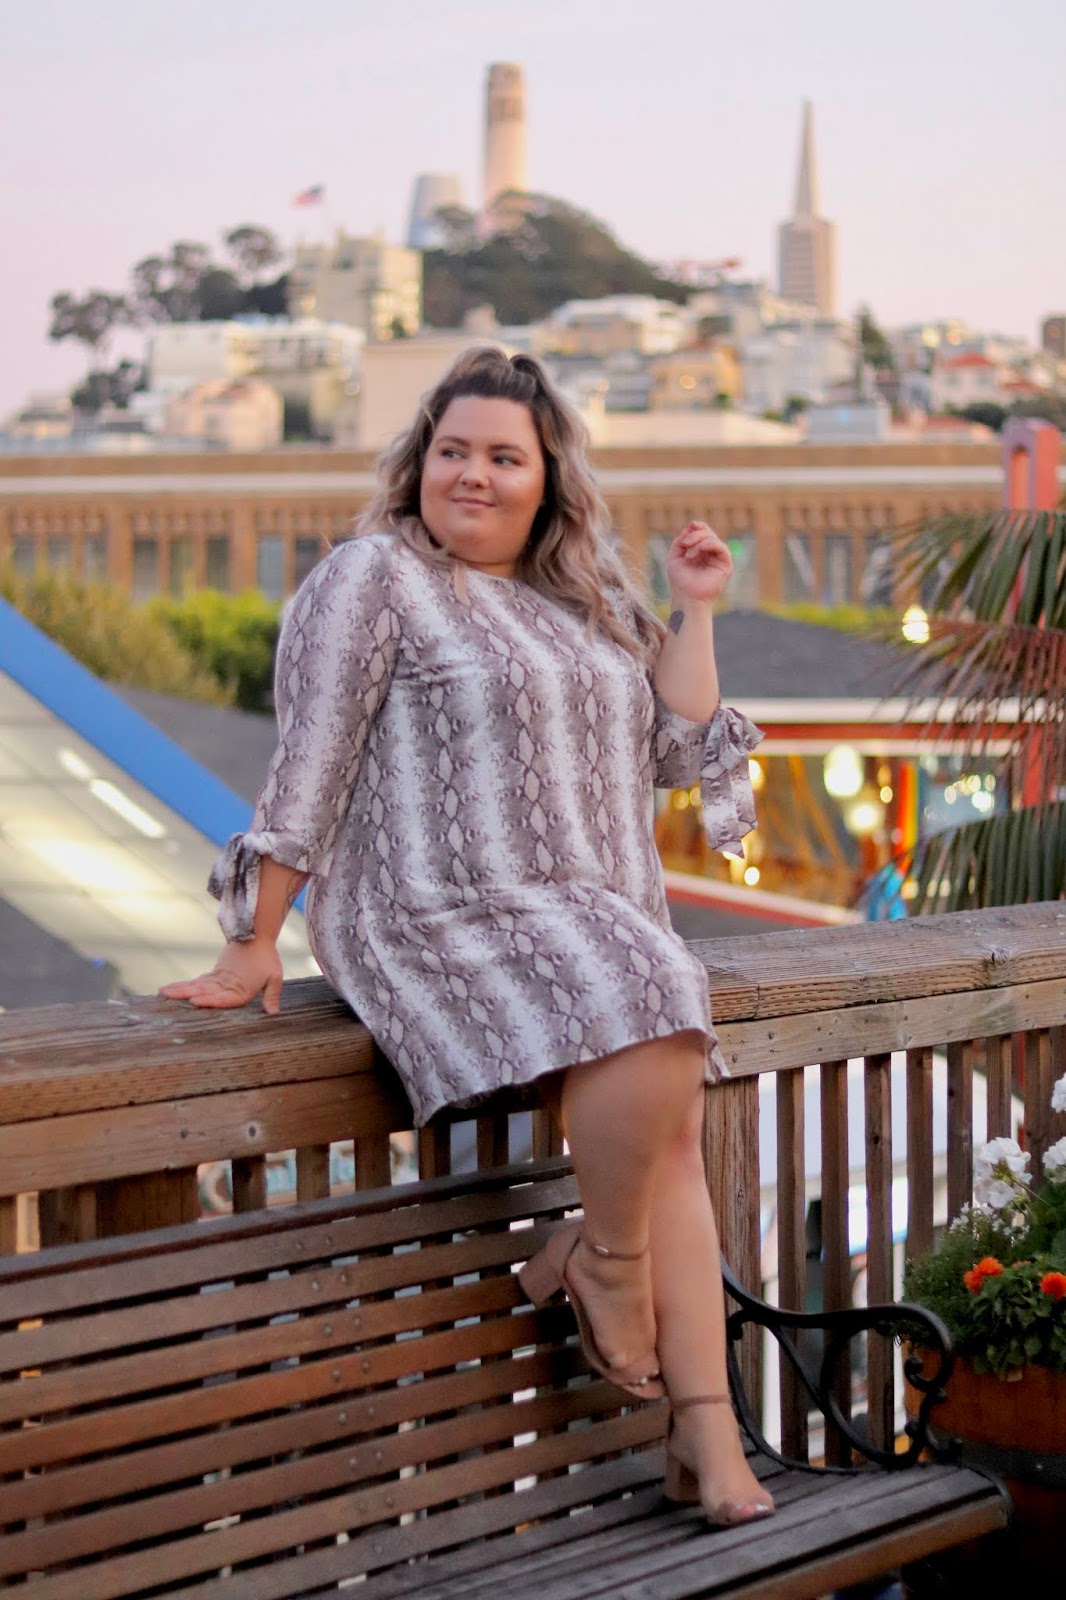 Chicago Plus Size Petite Fashion Blogger, influencer, YouTuber, and model Natalie Craig, of Natalie in the City, travels to Napa and San Francisco with Chic Soul to preview their fall / Napa Valley collection.